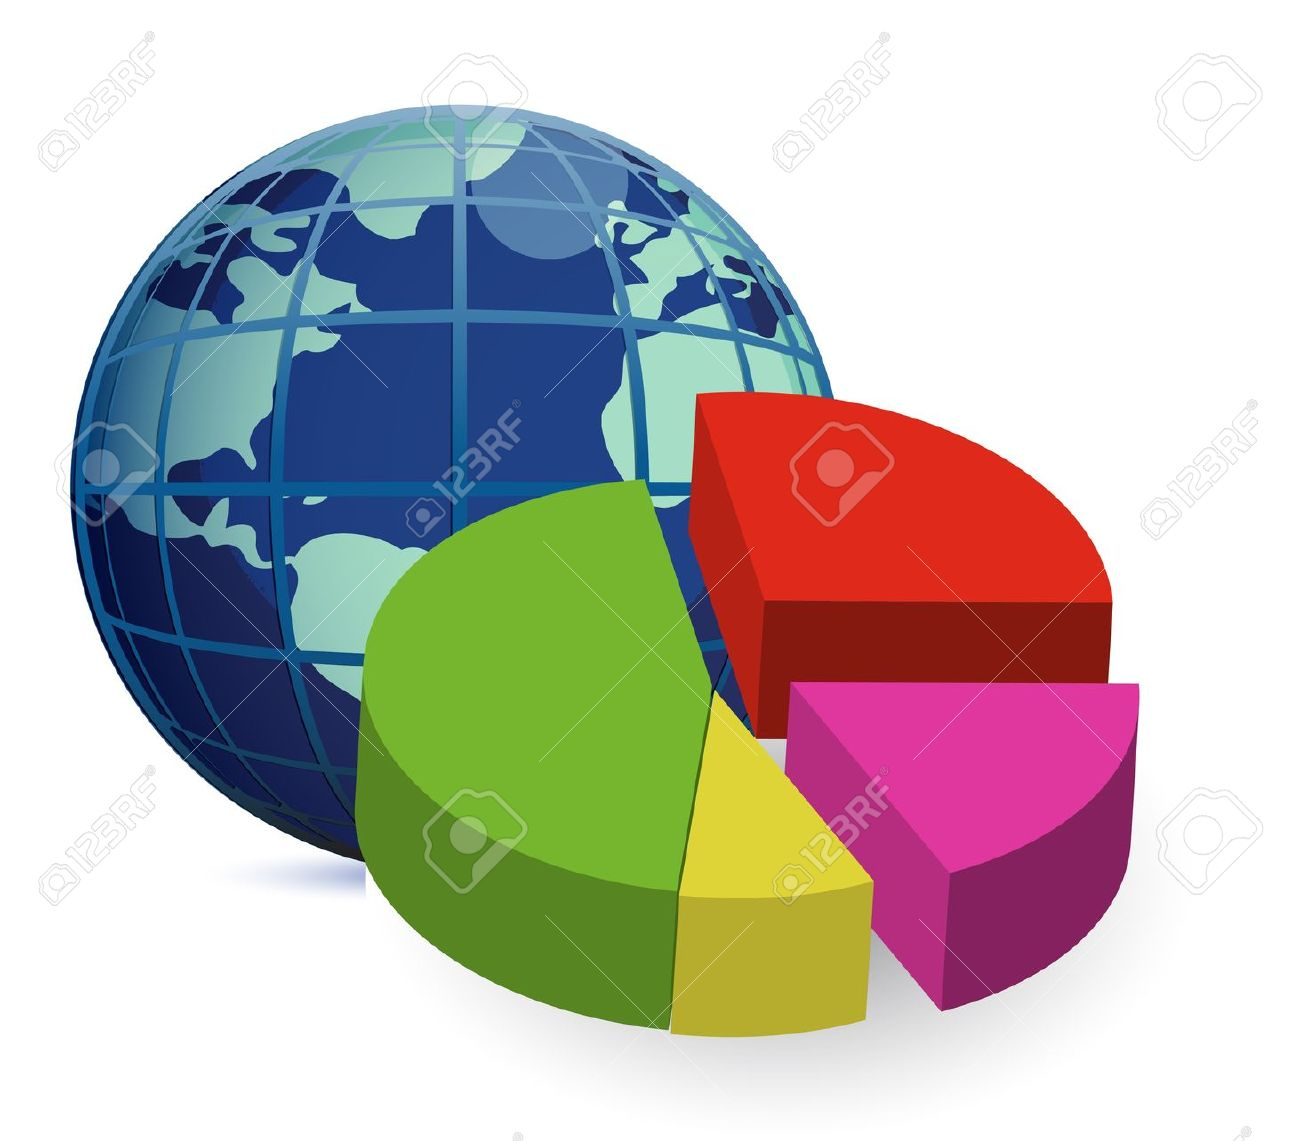 World economy clipart clipground world globe and a 3d global financial economy pie chart royalty nvjuhfo Gallery